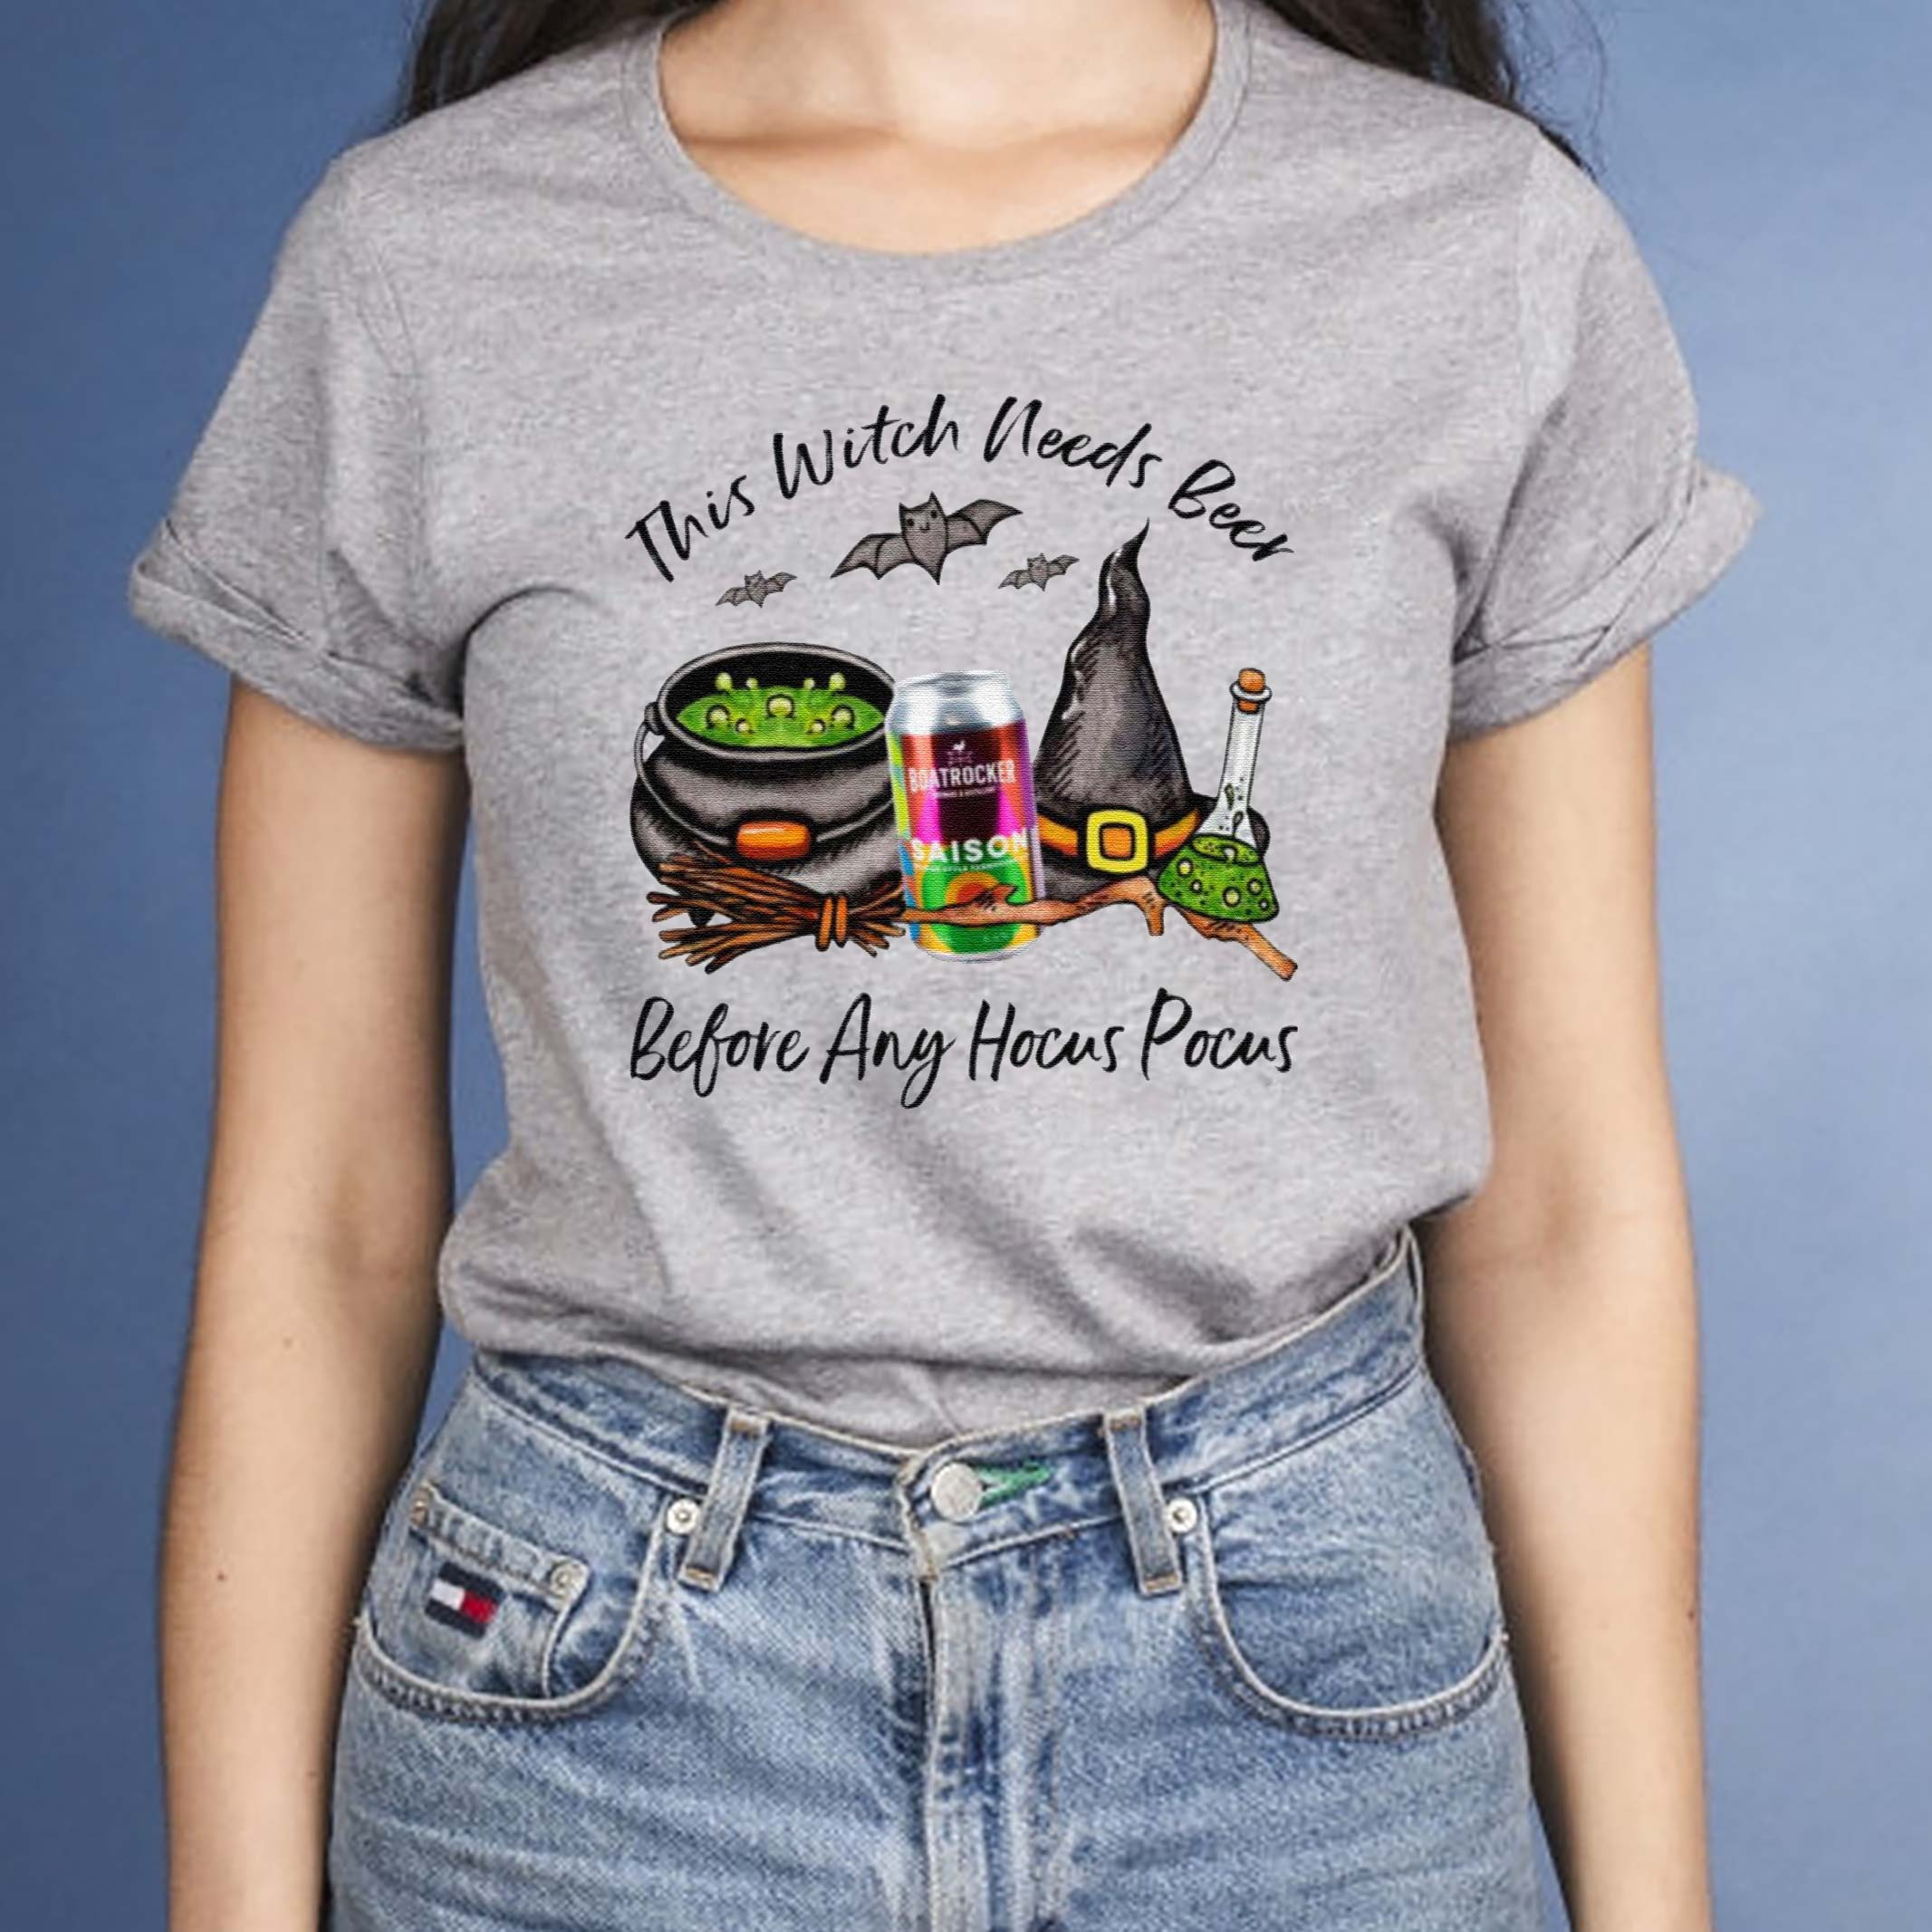 Boatrocker-Saison-Can-This-Witch-Needs-Beer-Before-Any-Hocus-Pocus-T-Shirts